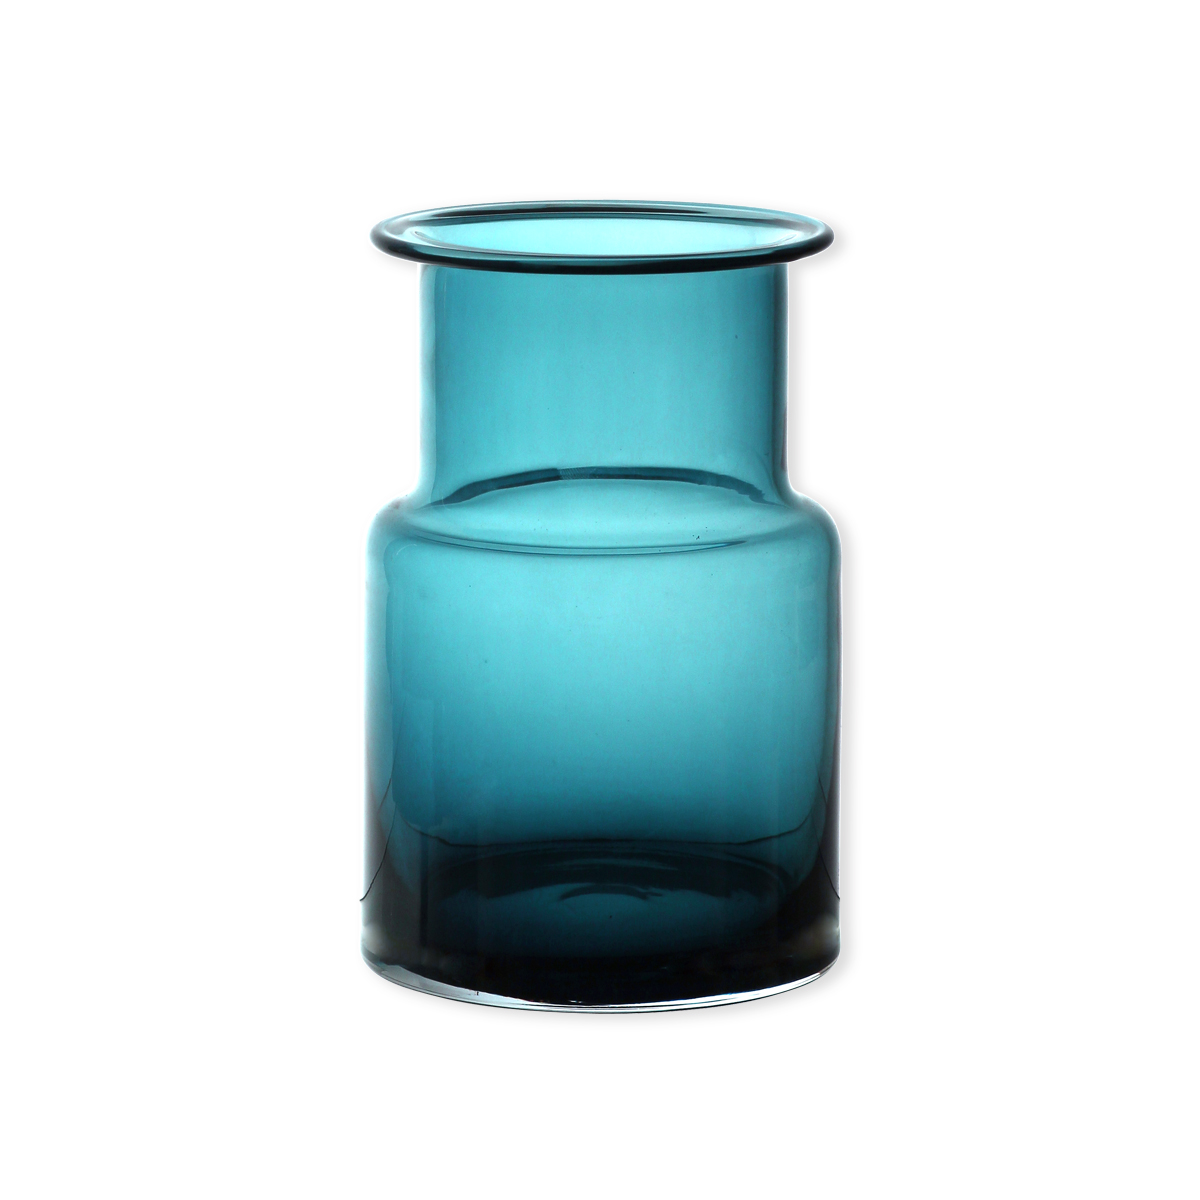 vase bleu turquoise en verre souffl bouche 20cm bruno. Black Bedroom Furniture Sets. Home Design Ideas